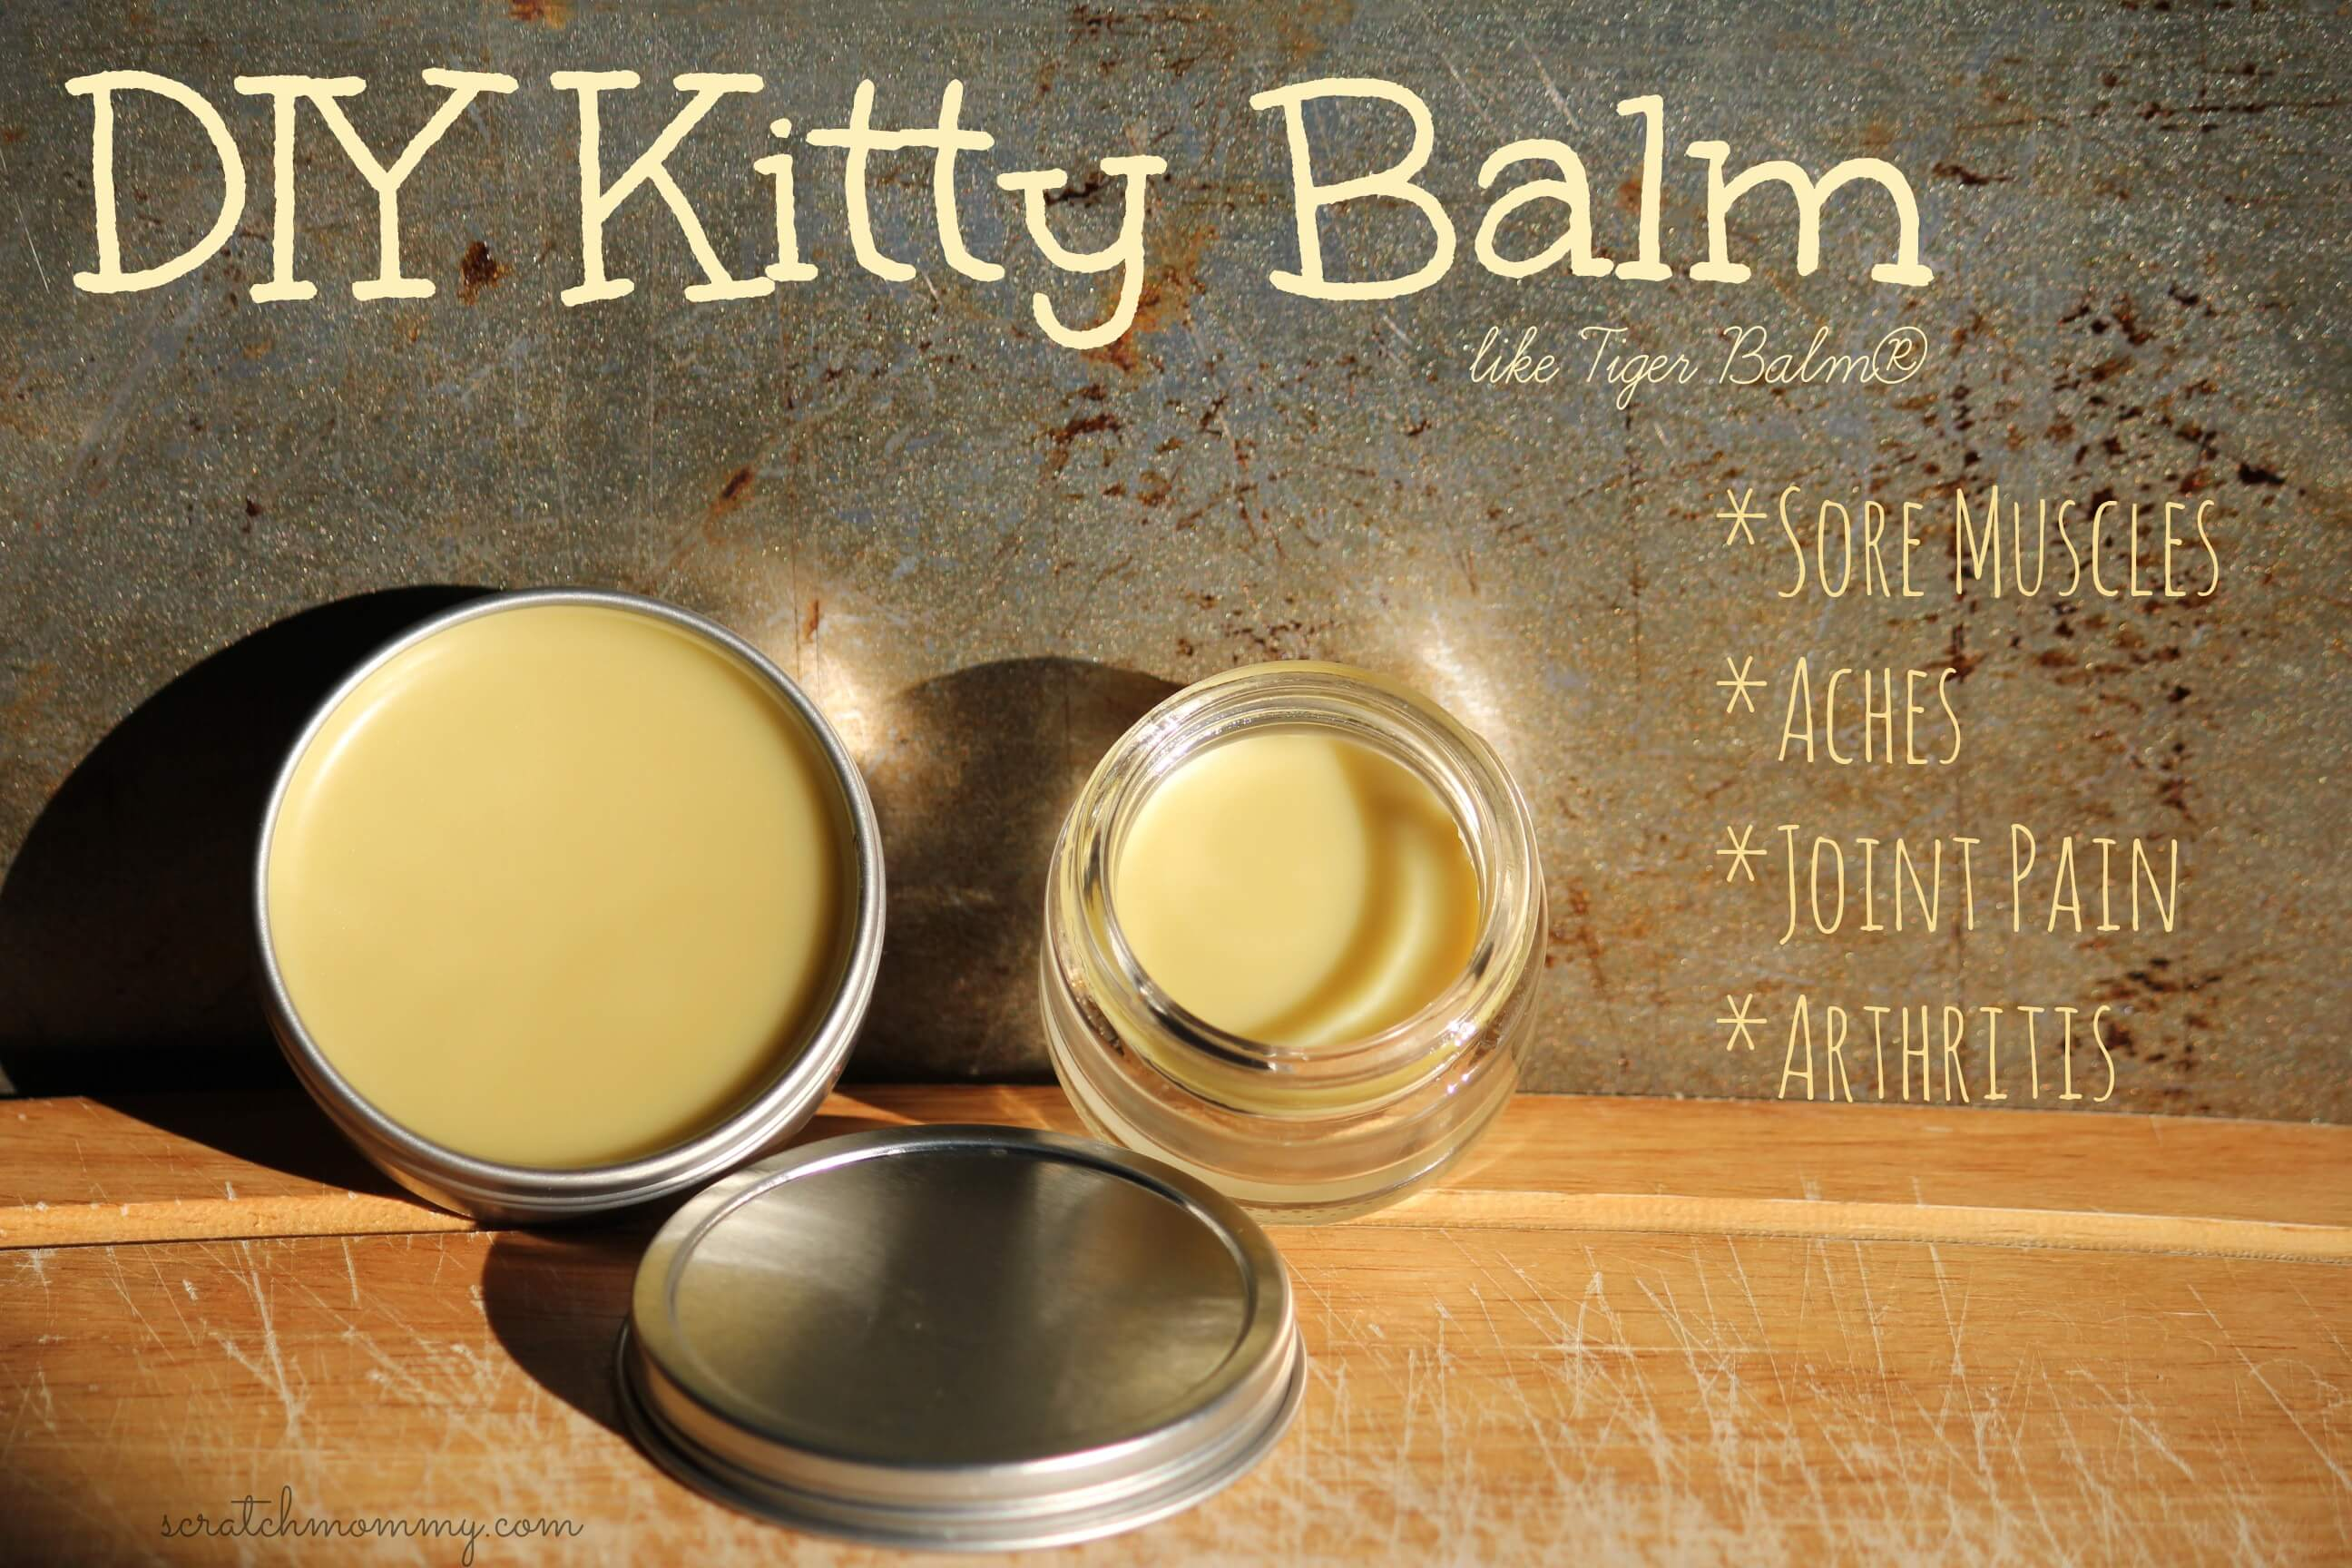 DIY Kitty Balm Recipe - Like Tiger Balm, but better! Non-toxic and effective solution for sore and aching muscles.